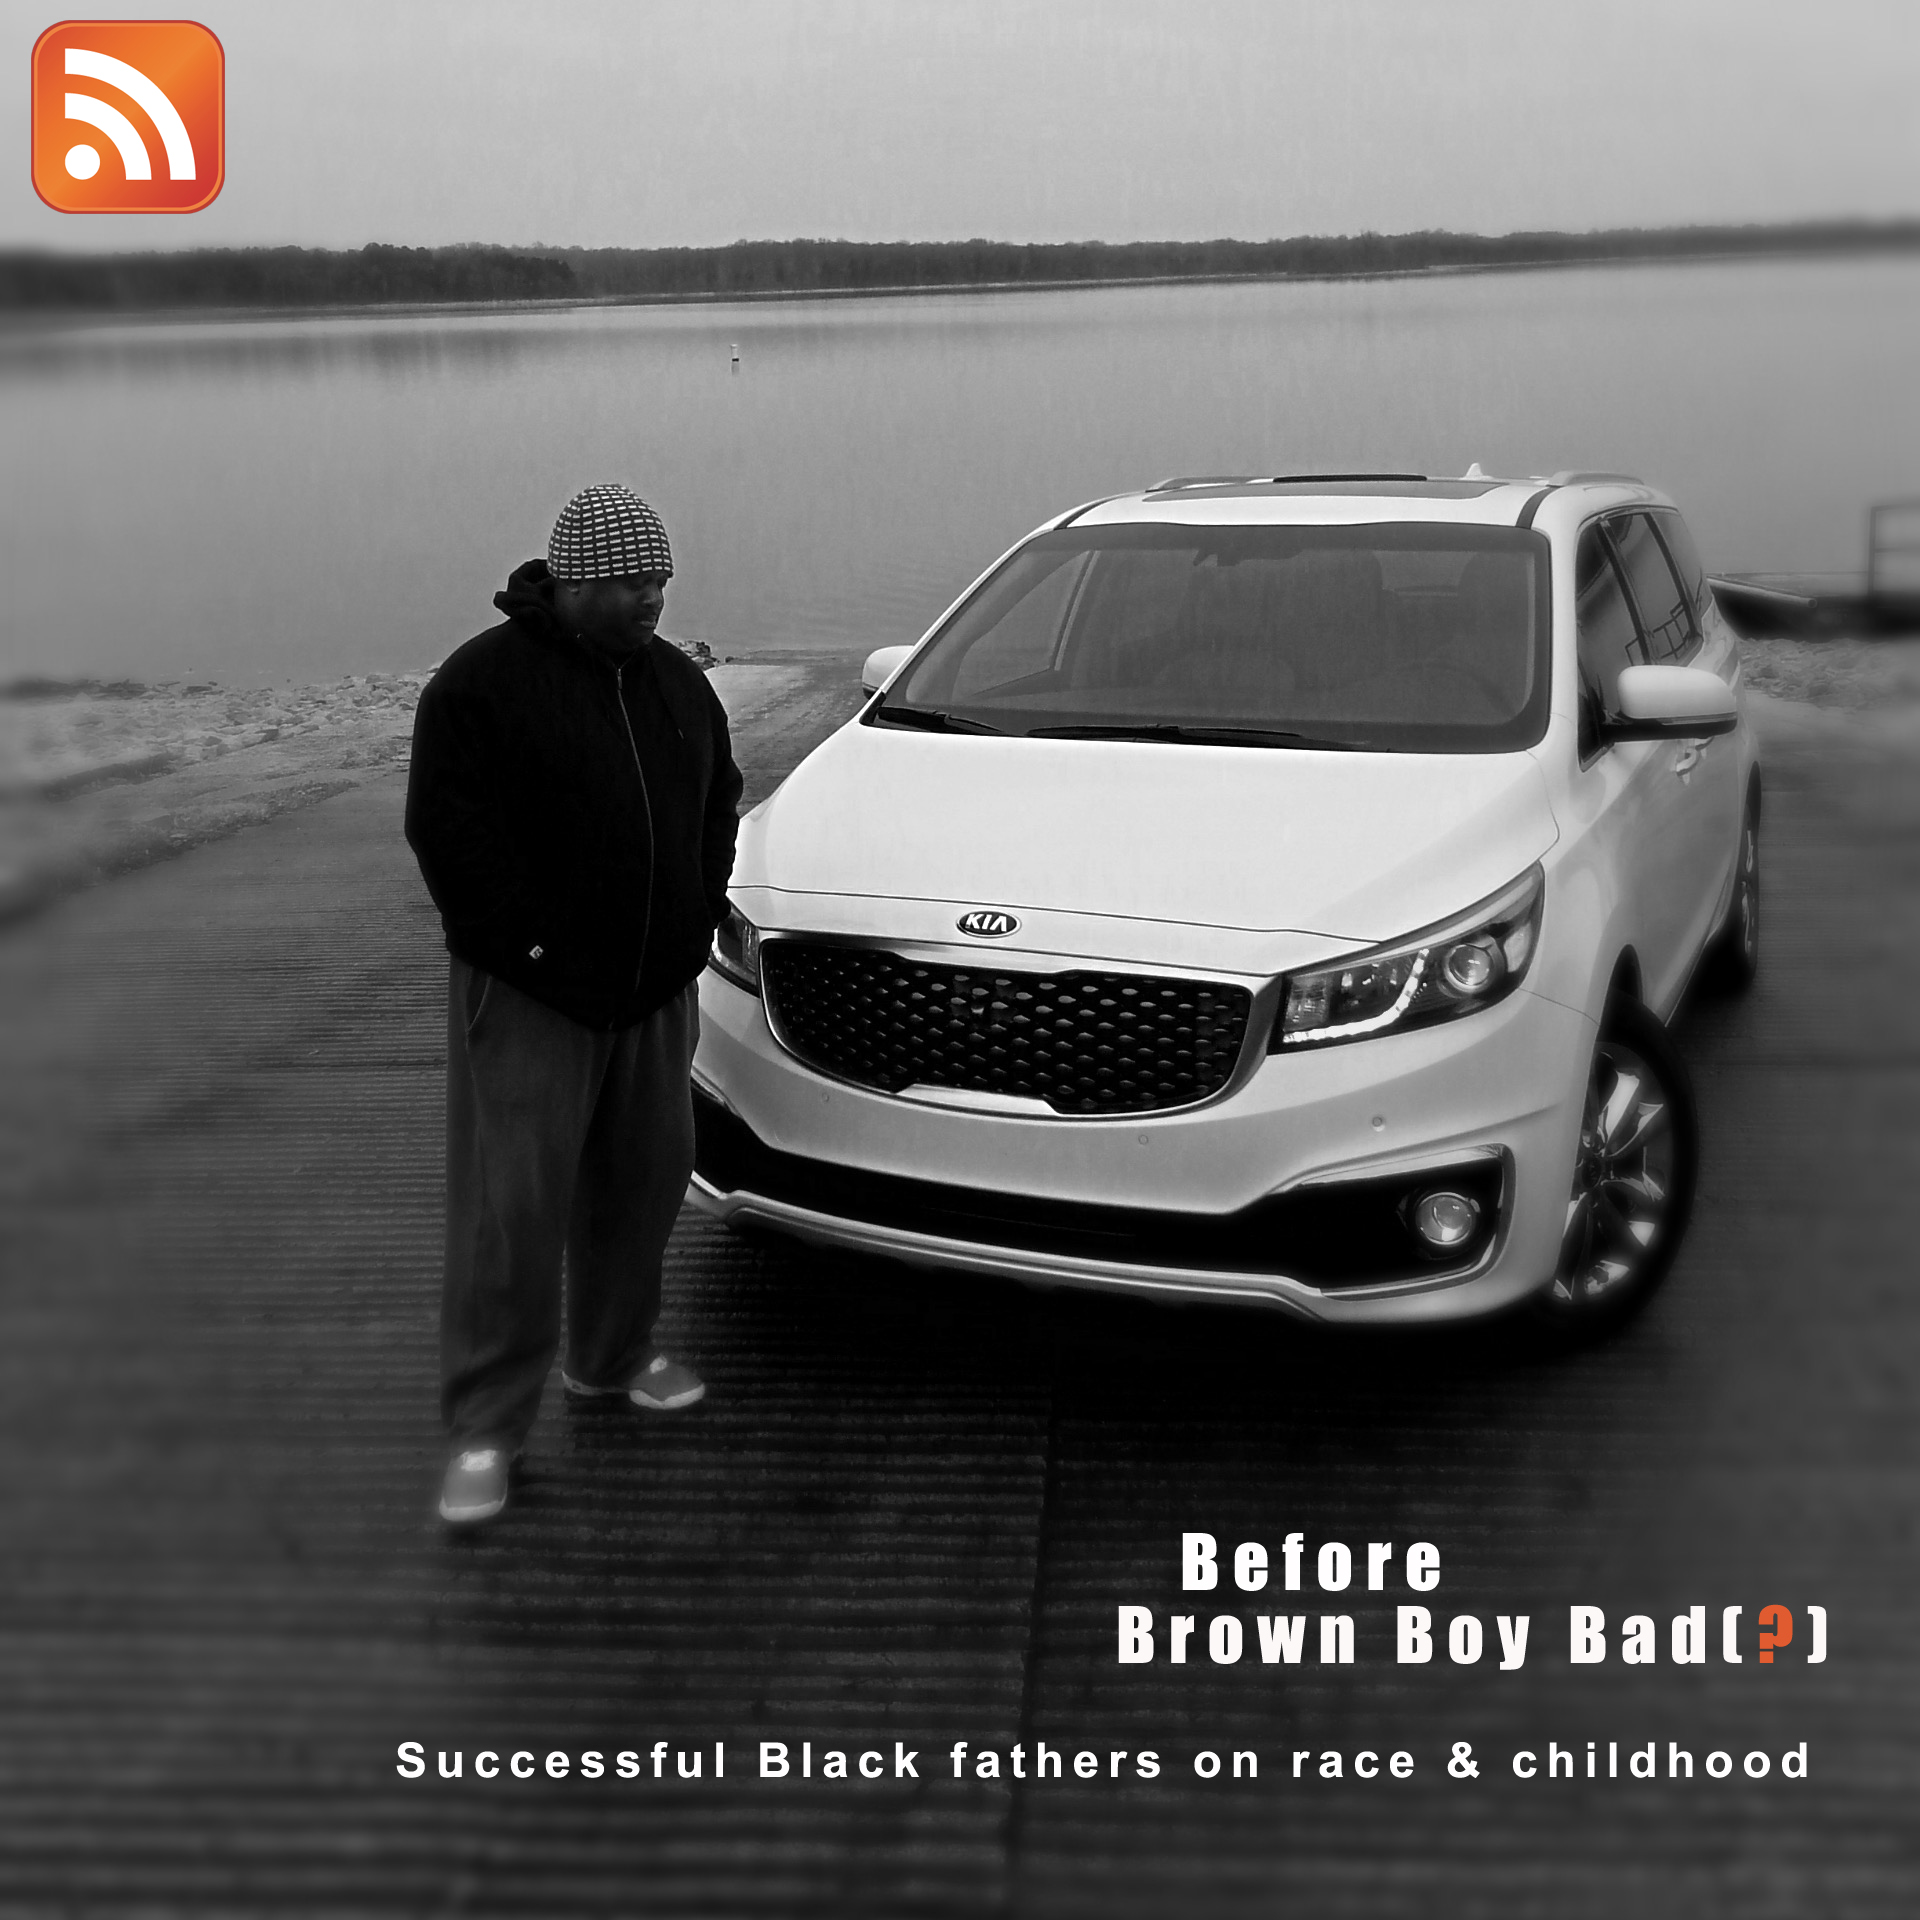 Black and white photo. An African-American man wearing a dark hoodie stands with his head bowed. Behind him a shiny white Kia Sedona minivan is parked facing him in front of a lake. The text reads: Before Brown Boy Bad(?); Successful fathers on race & childhood. Note: the question mark is orange and it is in parentheses on purpose. There is an orange podcast icon in the upper left corner of the photo.